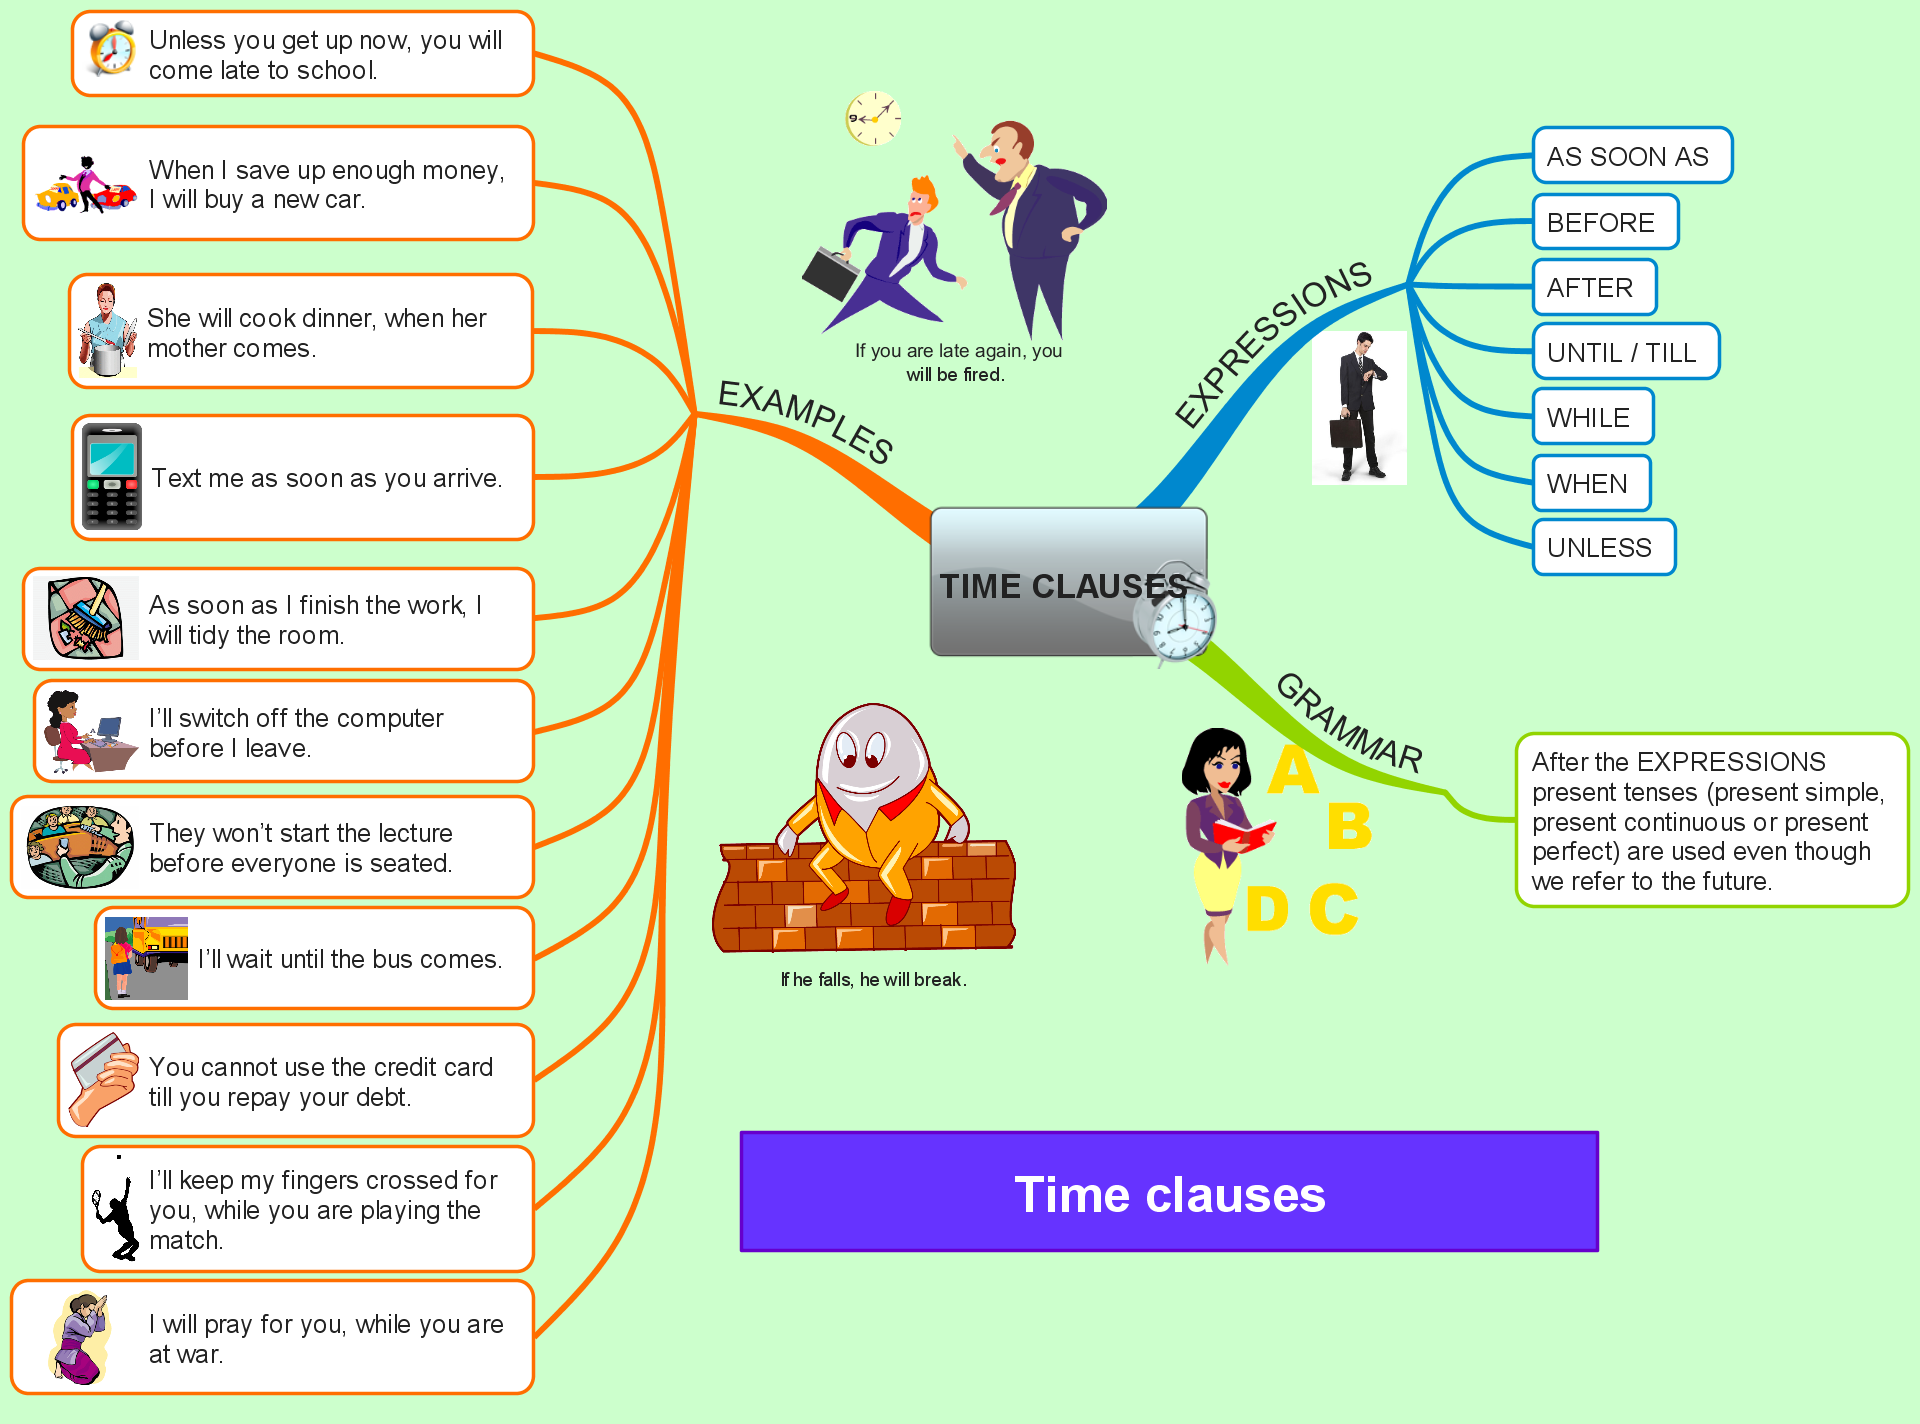 time clauses mind map